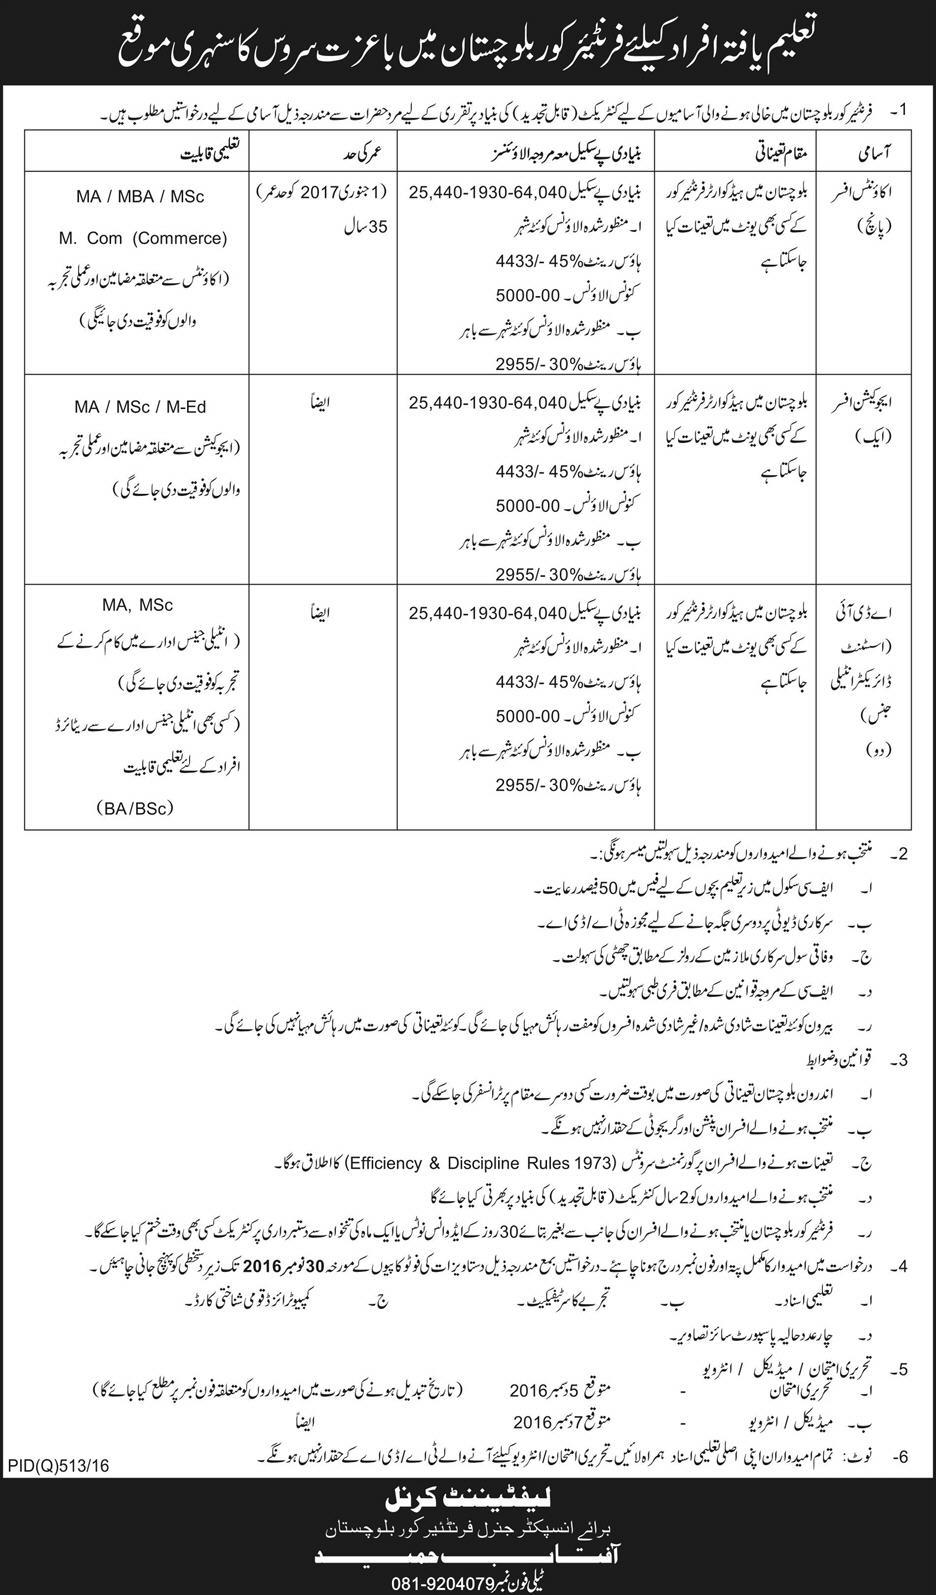 corps balochistan intelligence officer jobs 2016 for ma msc mba frontier corps balochistan intelligence officer jobs 2016 for ma msc mba mcom